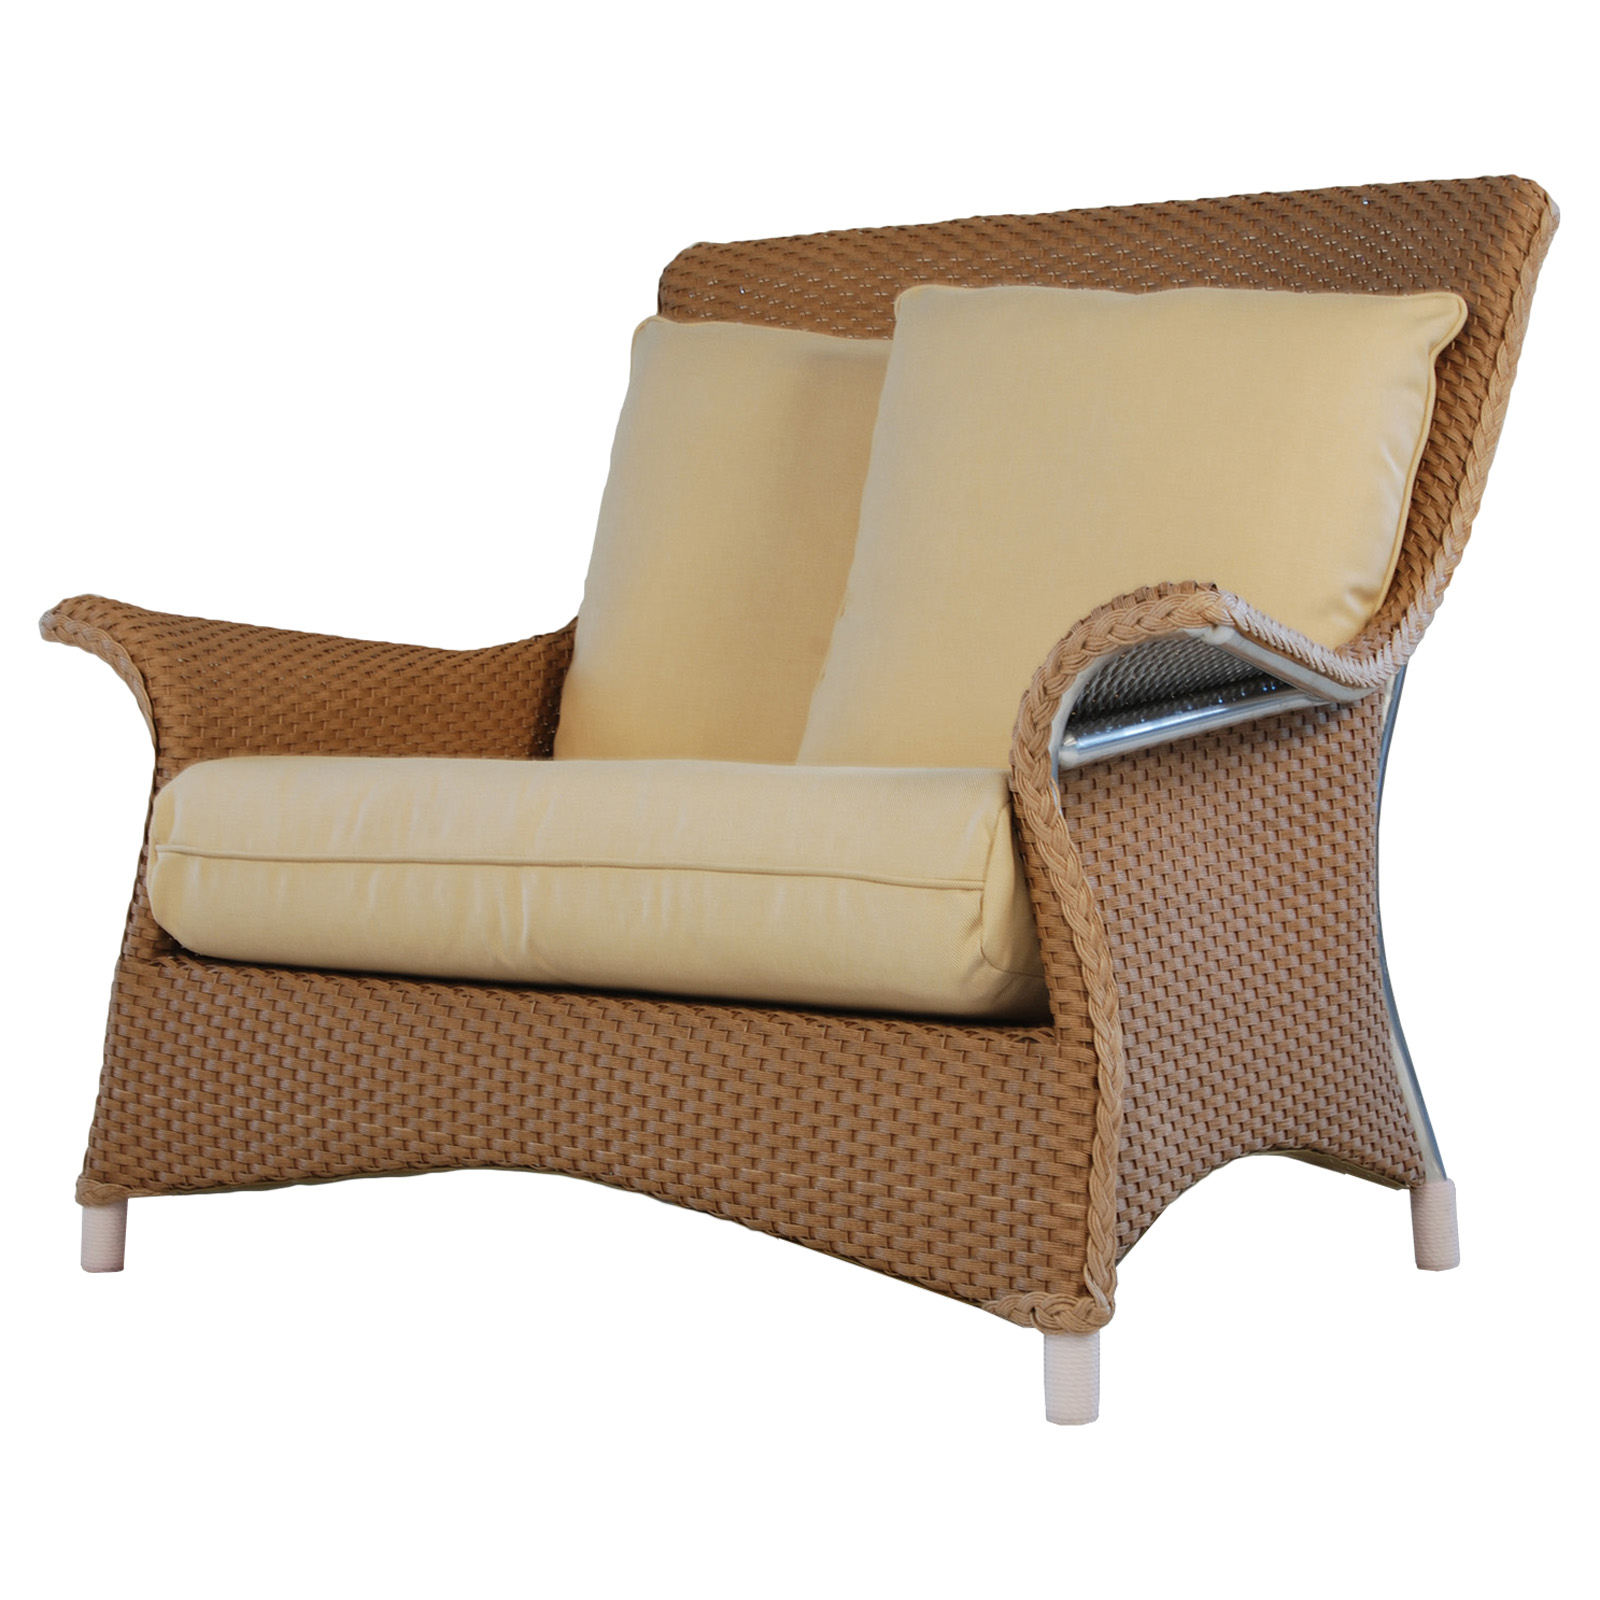 Lounge Chair And A Half Lloyd Flanders Mandalay All Weather Wicker Lounge Chair